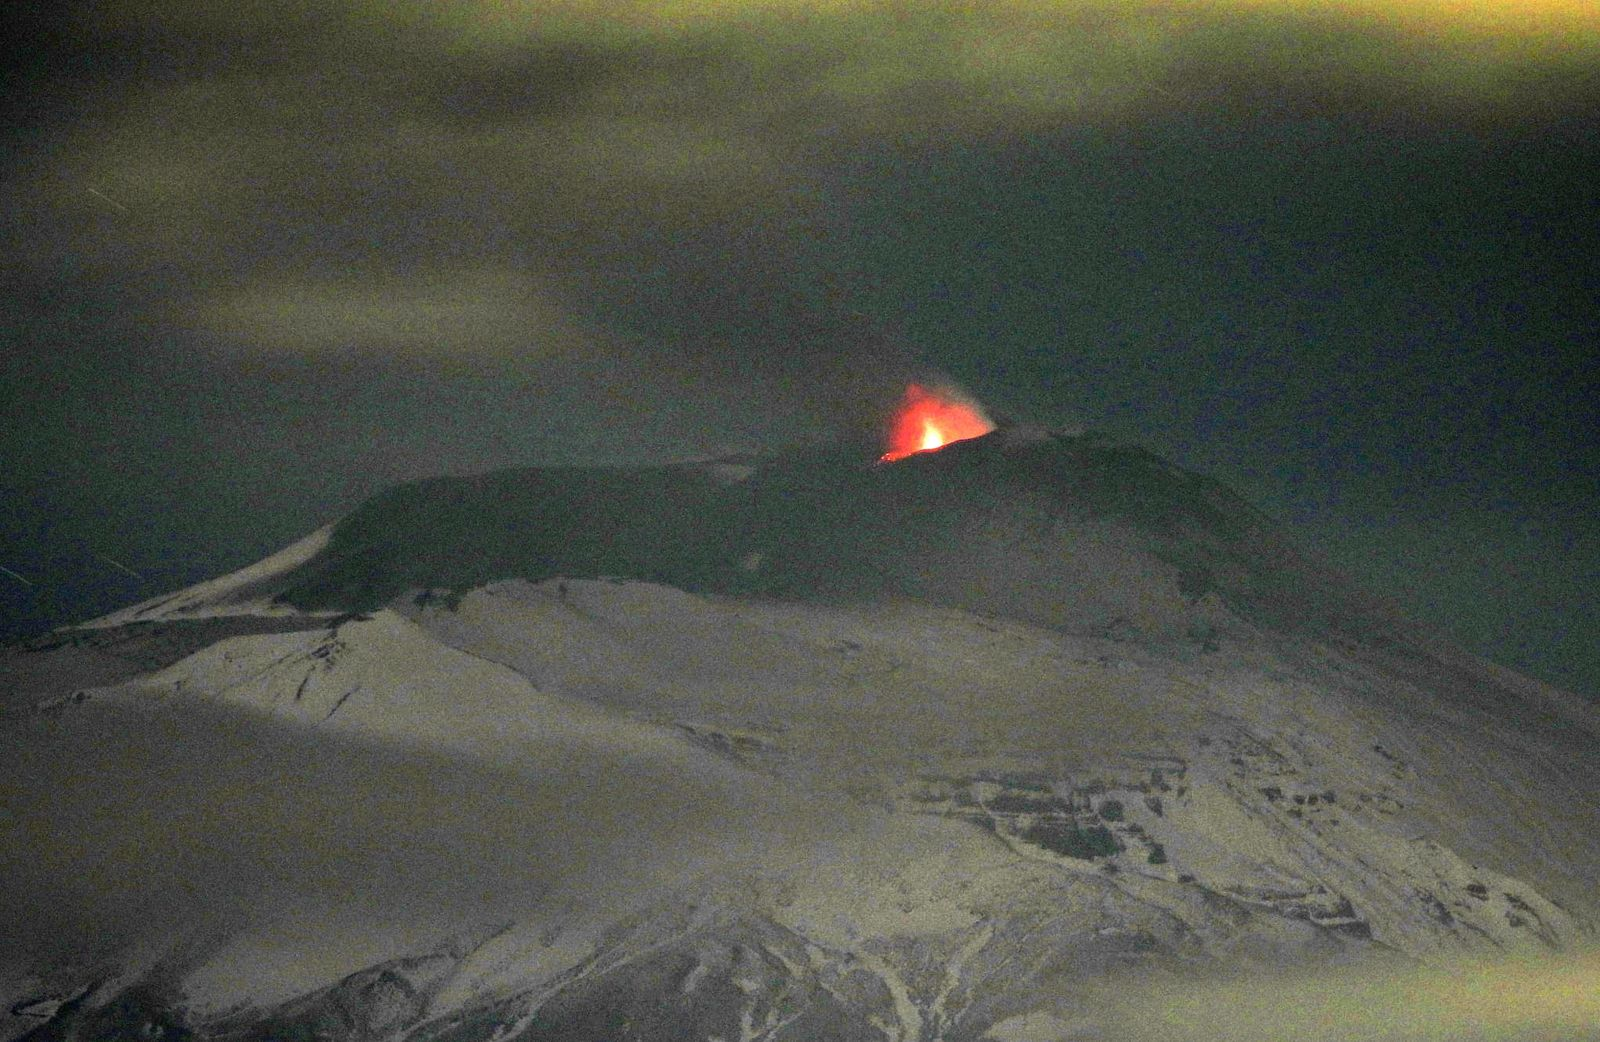 Etna - crater of the Saddle / SEC- Strombolian activity of 25.11.2020 in the evening - photo Boris Behncke